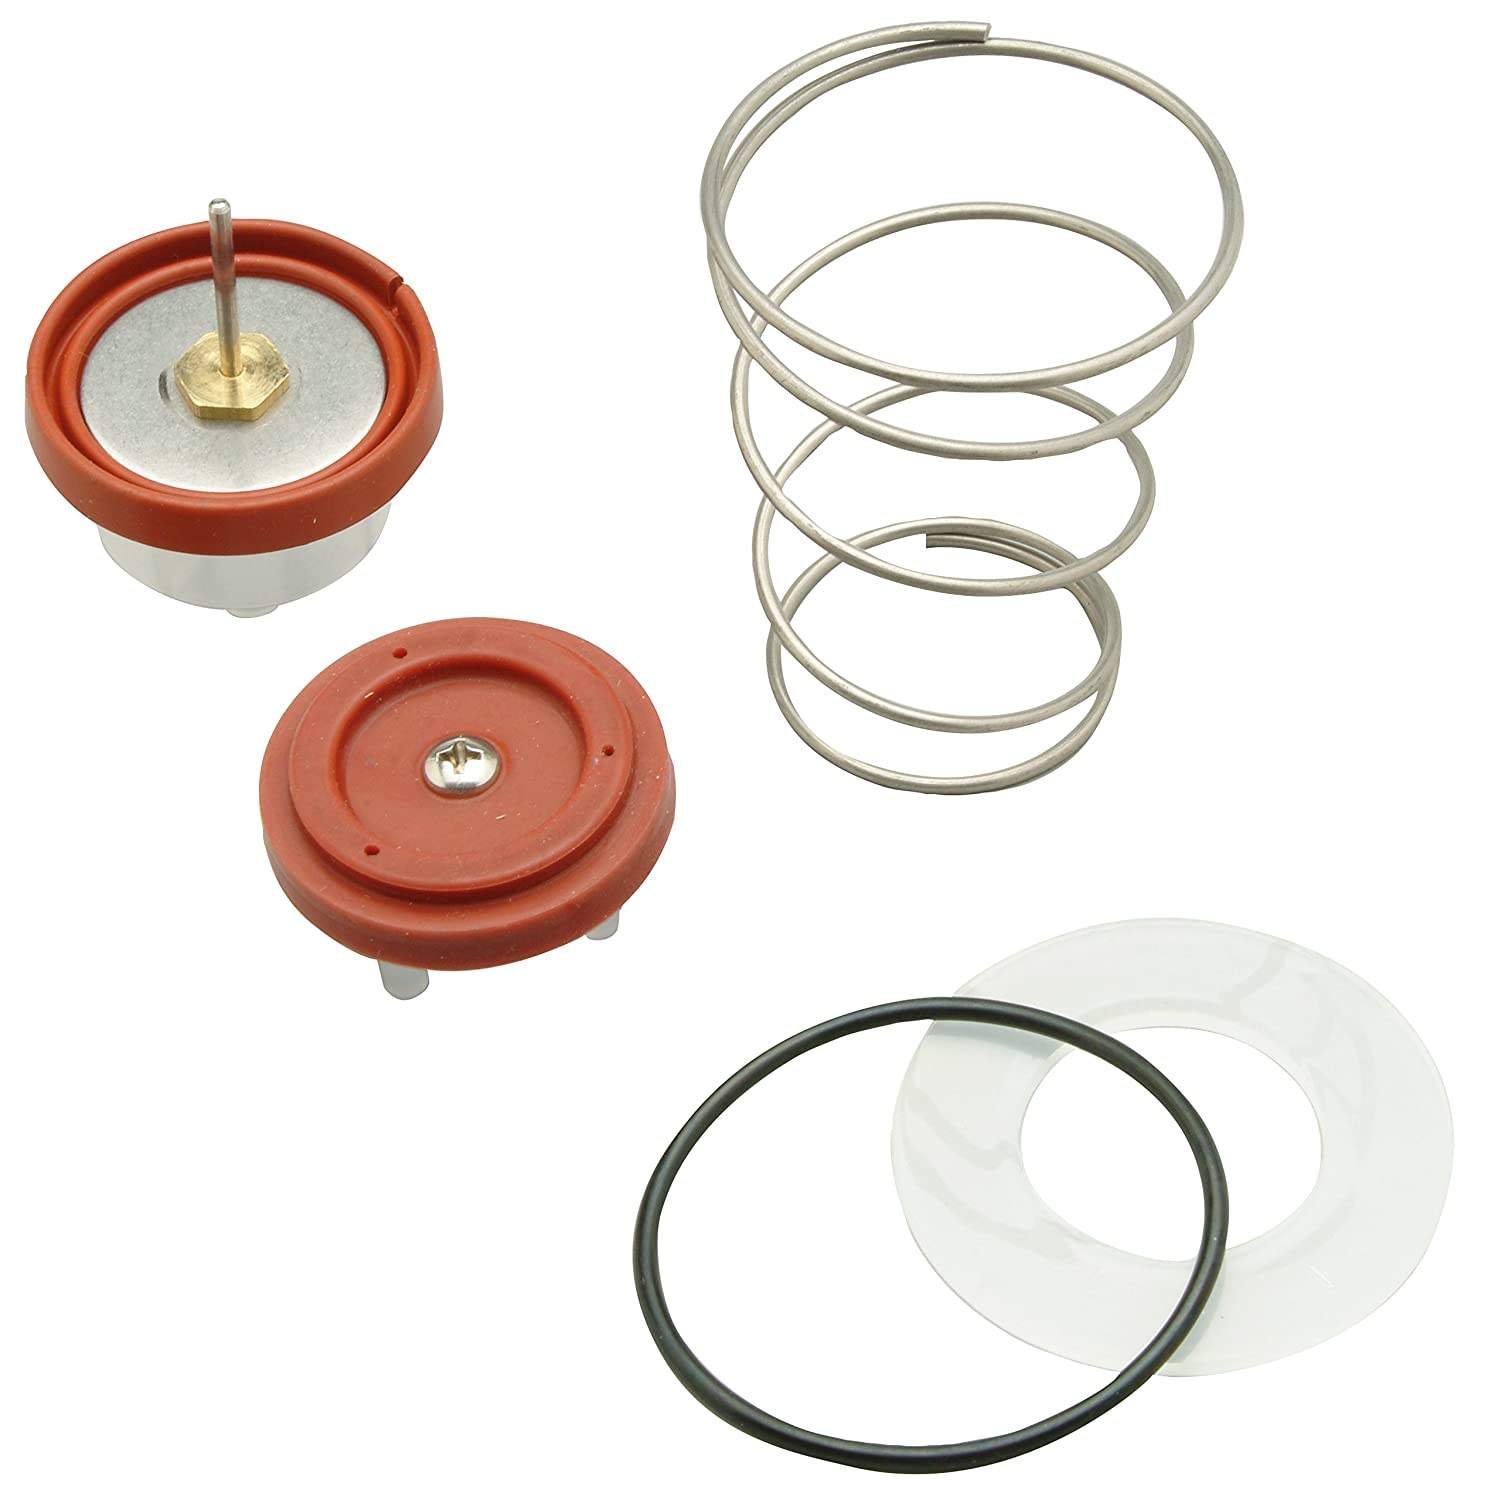 "Zurn RK1-720APK Wilkins Pressure Vacuum Breaker Assembly (PVB) Pro Repair Kit for 1/2"" to 1"" Model 720A and for 0.5"" to 1"""